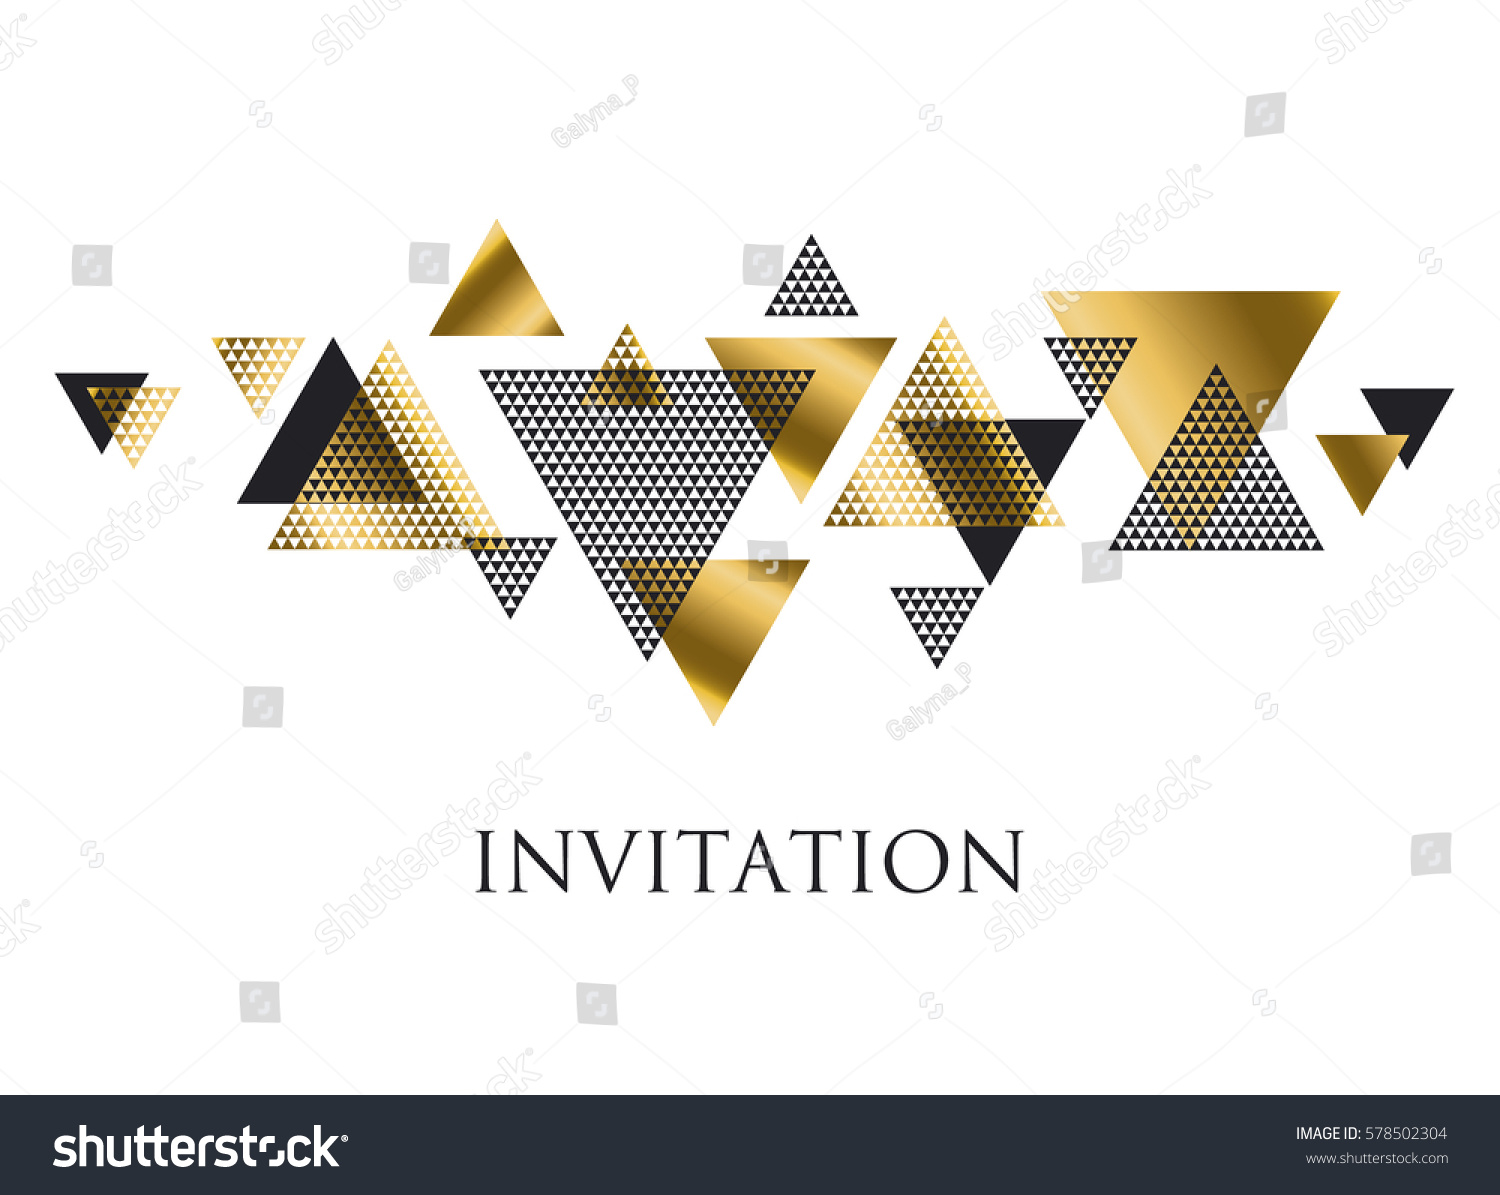 Triangle geometry abstract vector illustration header stockvector 578502304 shutterstock - Deco donker gang ...